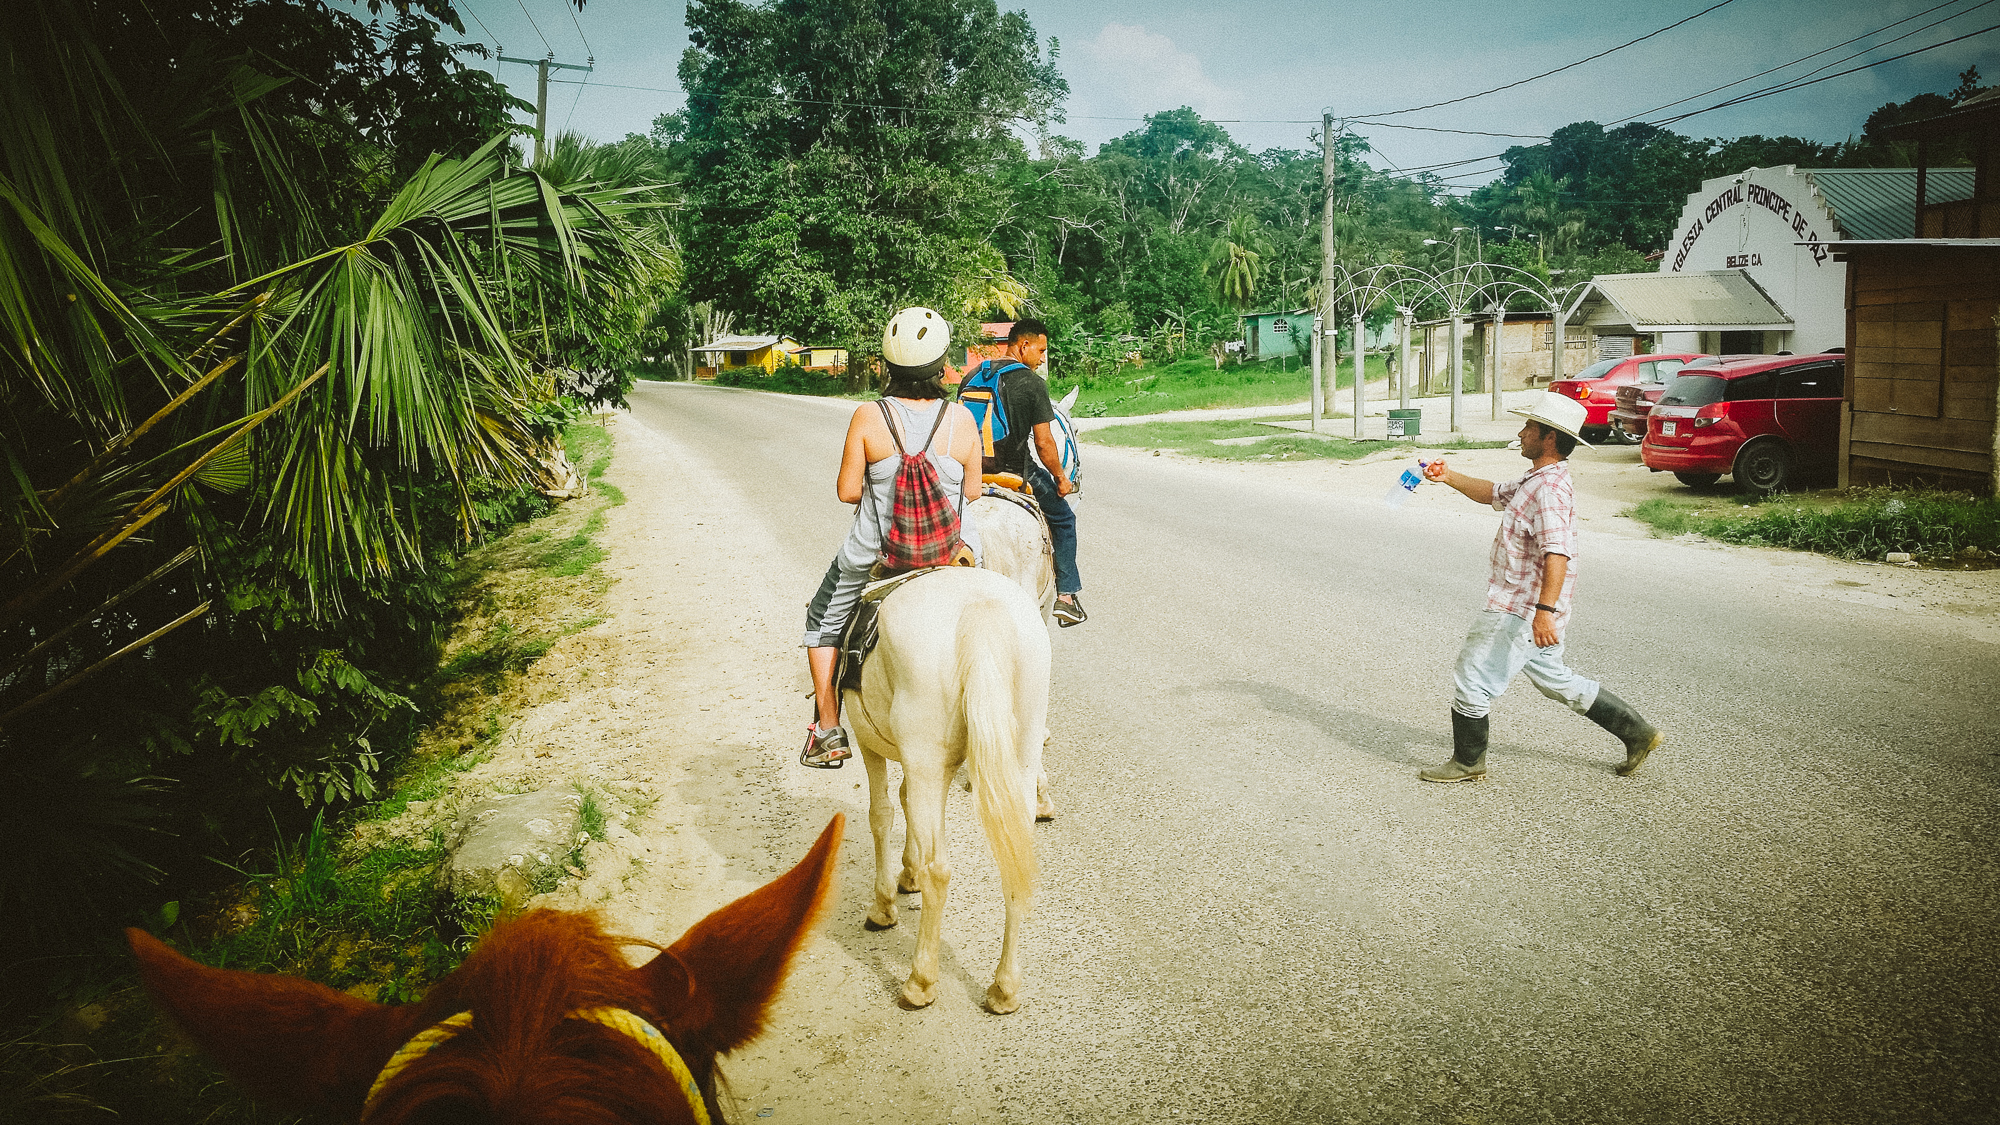 In the small village of San Jose Succotz, our guide from  Hanna Stables  got a quick refreshment from a friend after crossing the Mopan River on pulley ferry. My horse, Justice, did it like the pro he is!